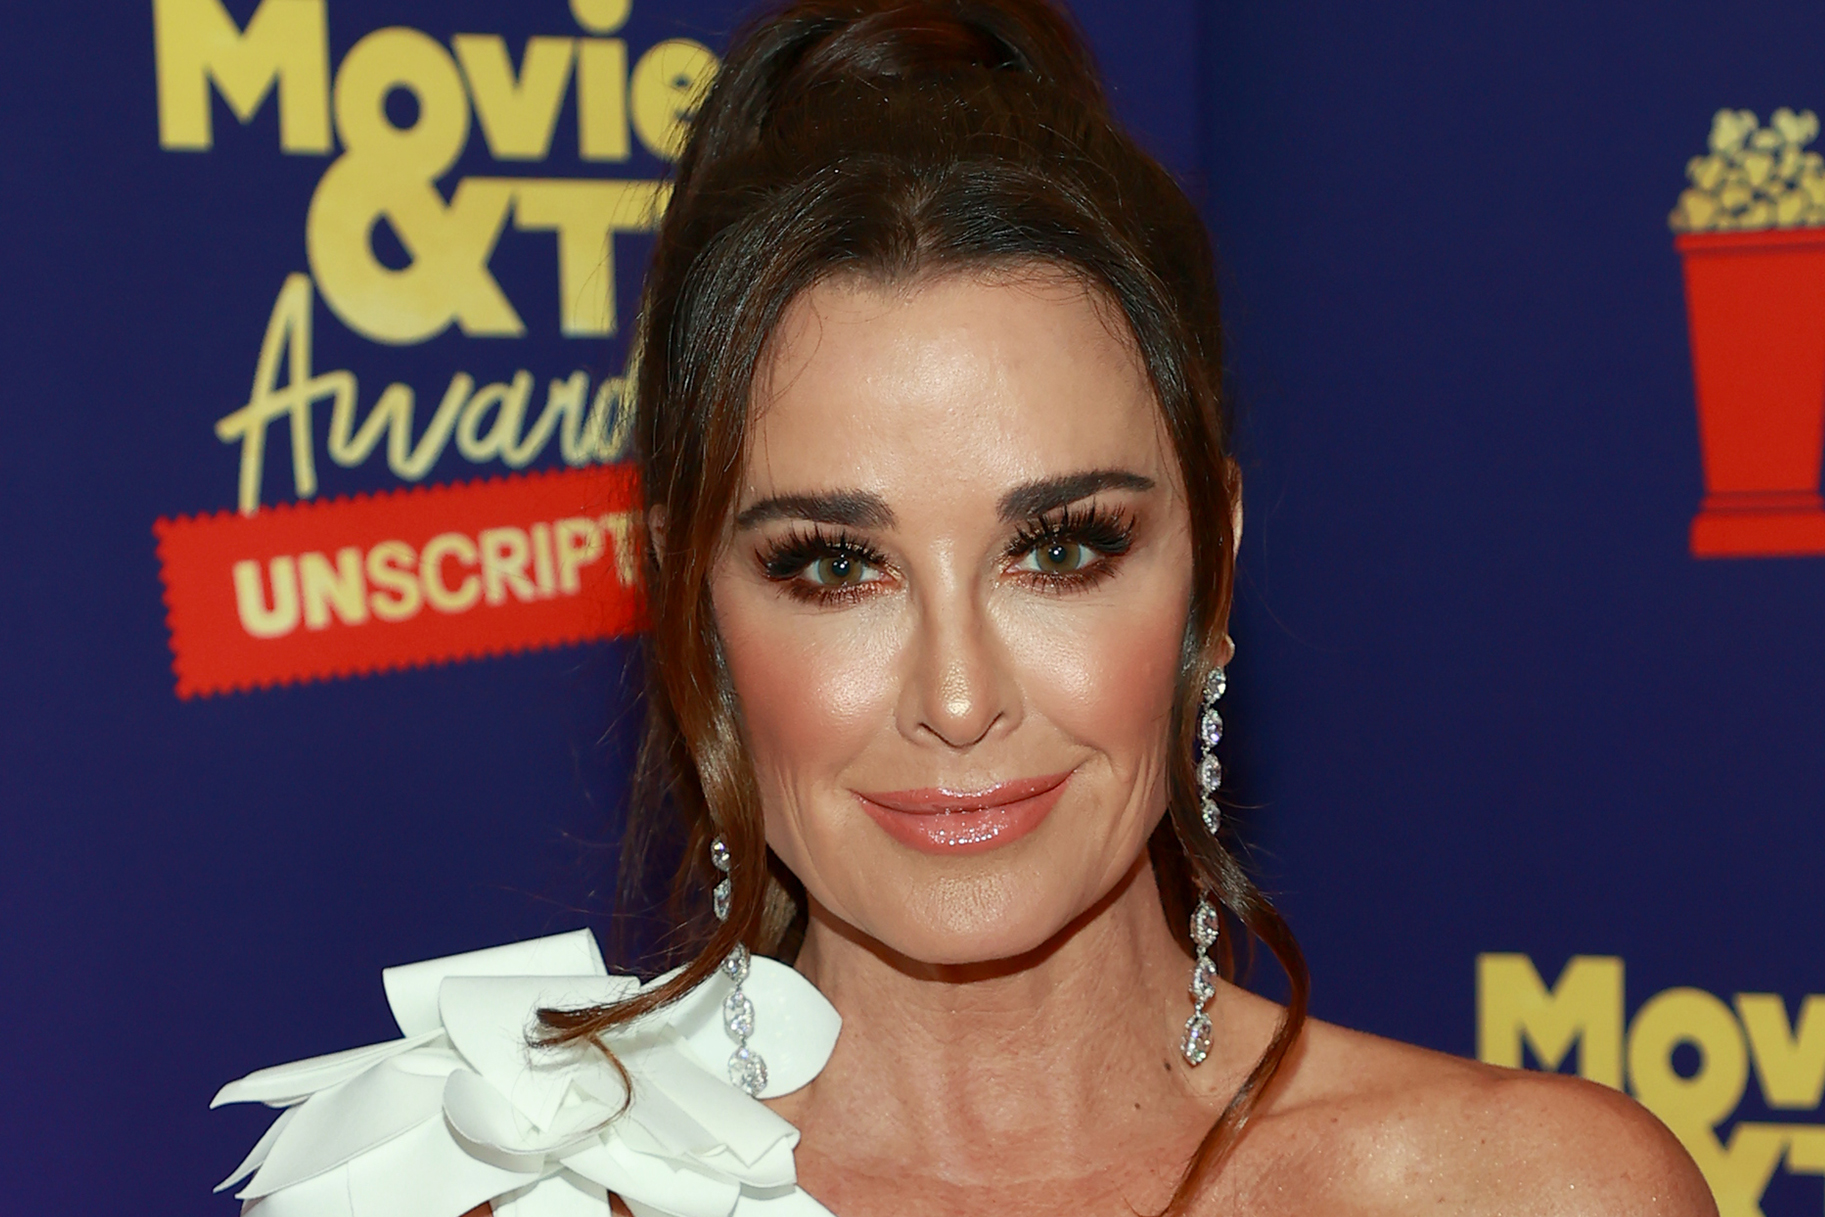 Kyle Richards Mtv Awards Look